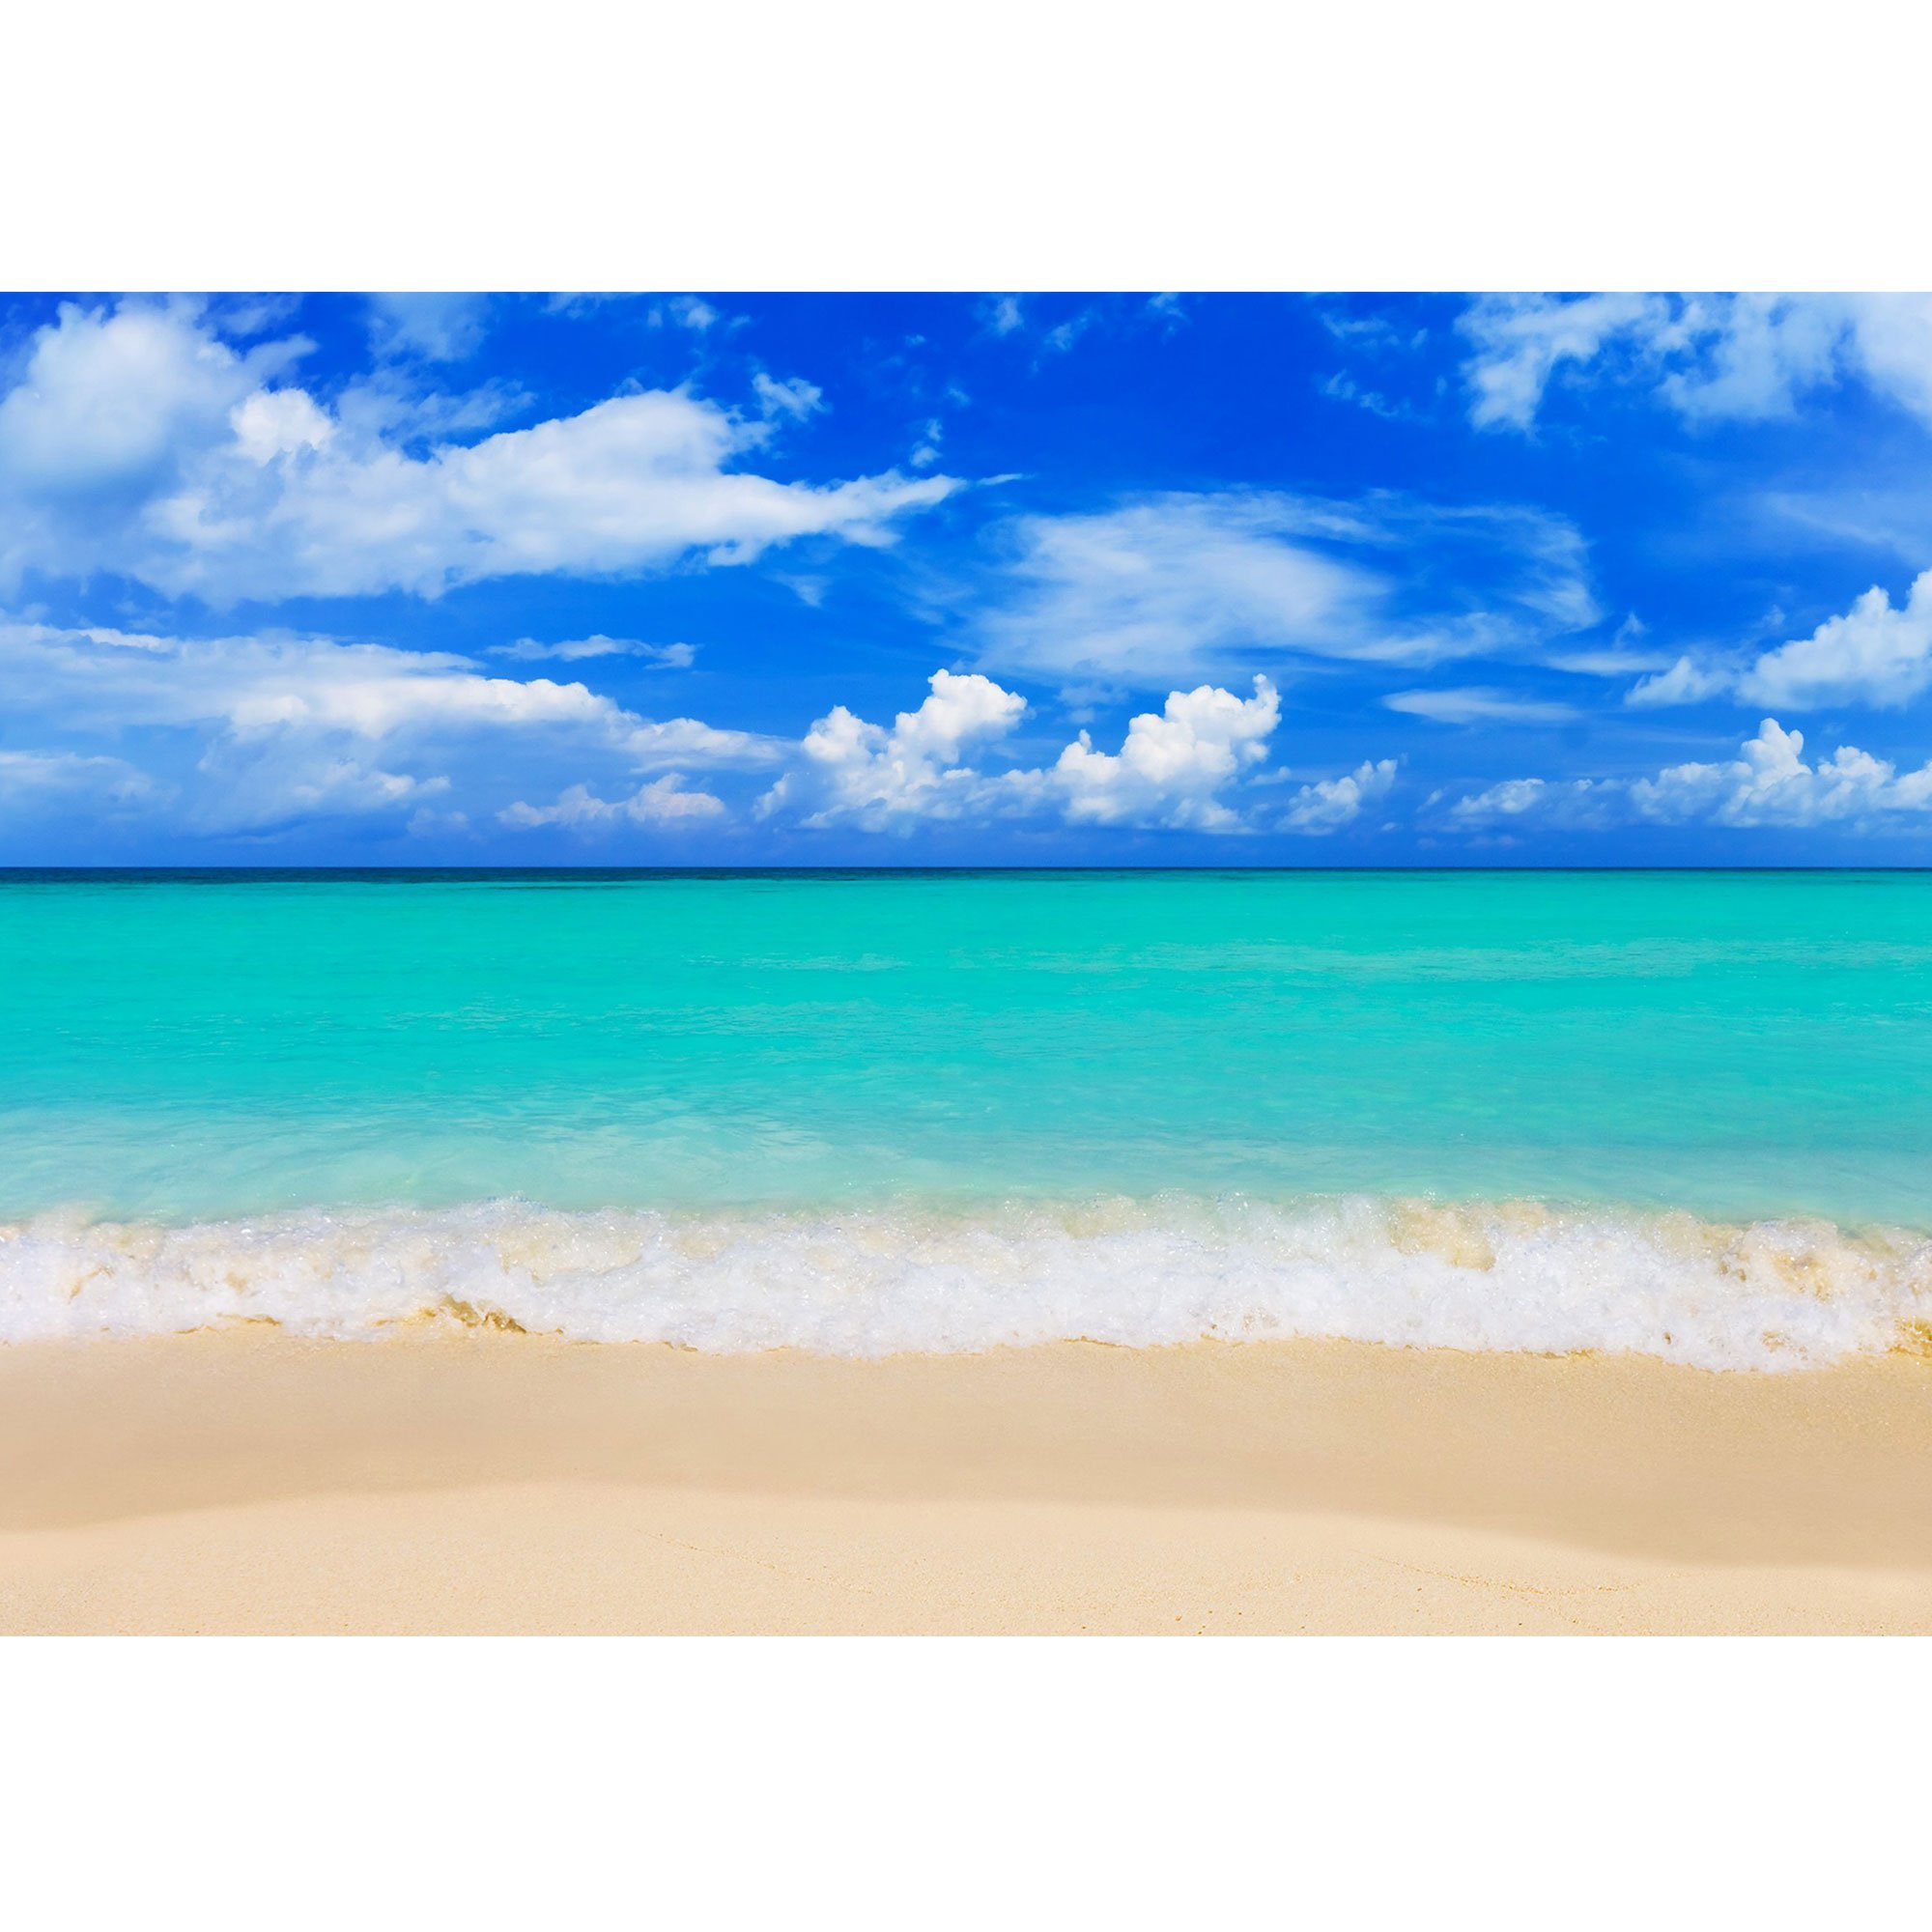 wall26 - Word Paradise on Beach - Concept Travel Background - Removable Wall Mural | Self-Adhesive Large Wallpaper - 100x144 inches by wall26 (Image #2)